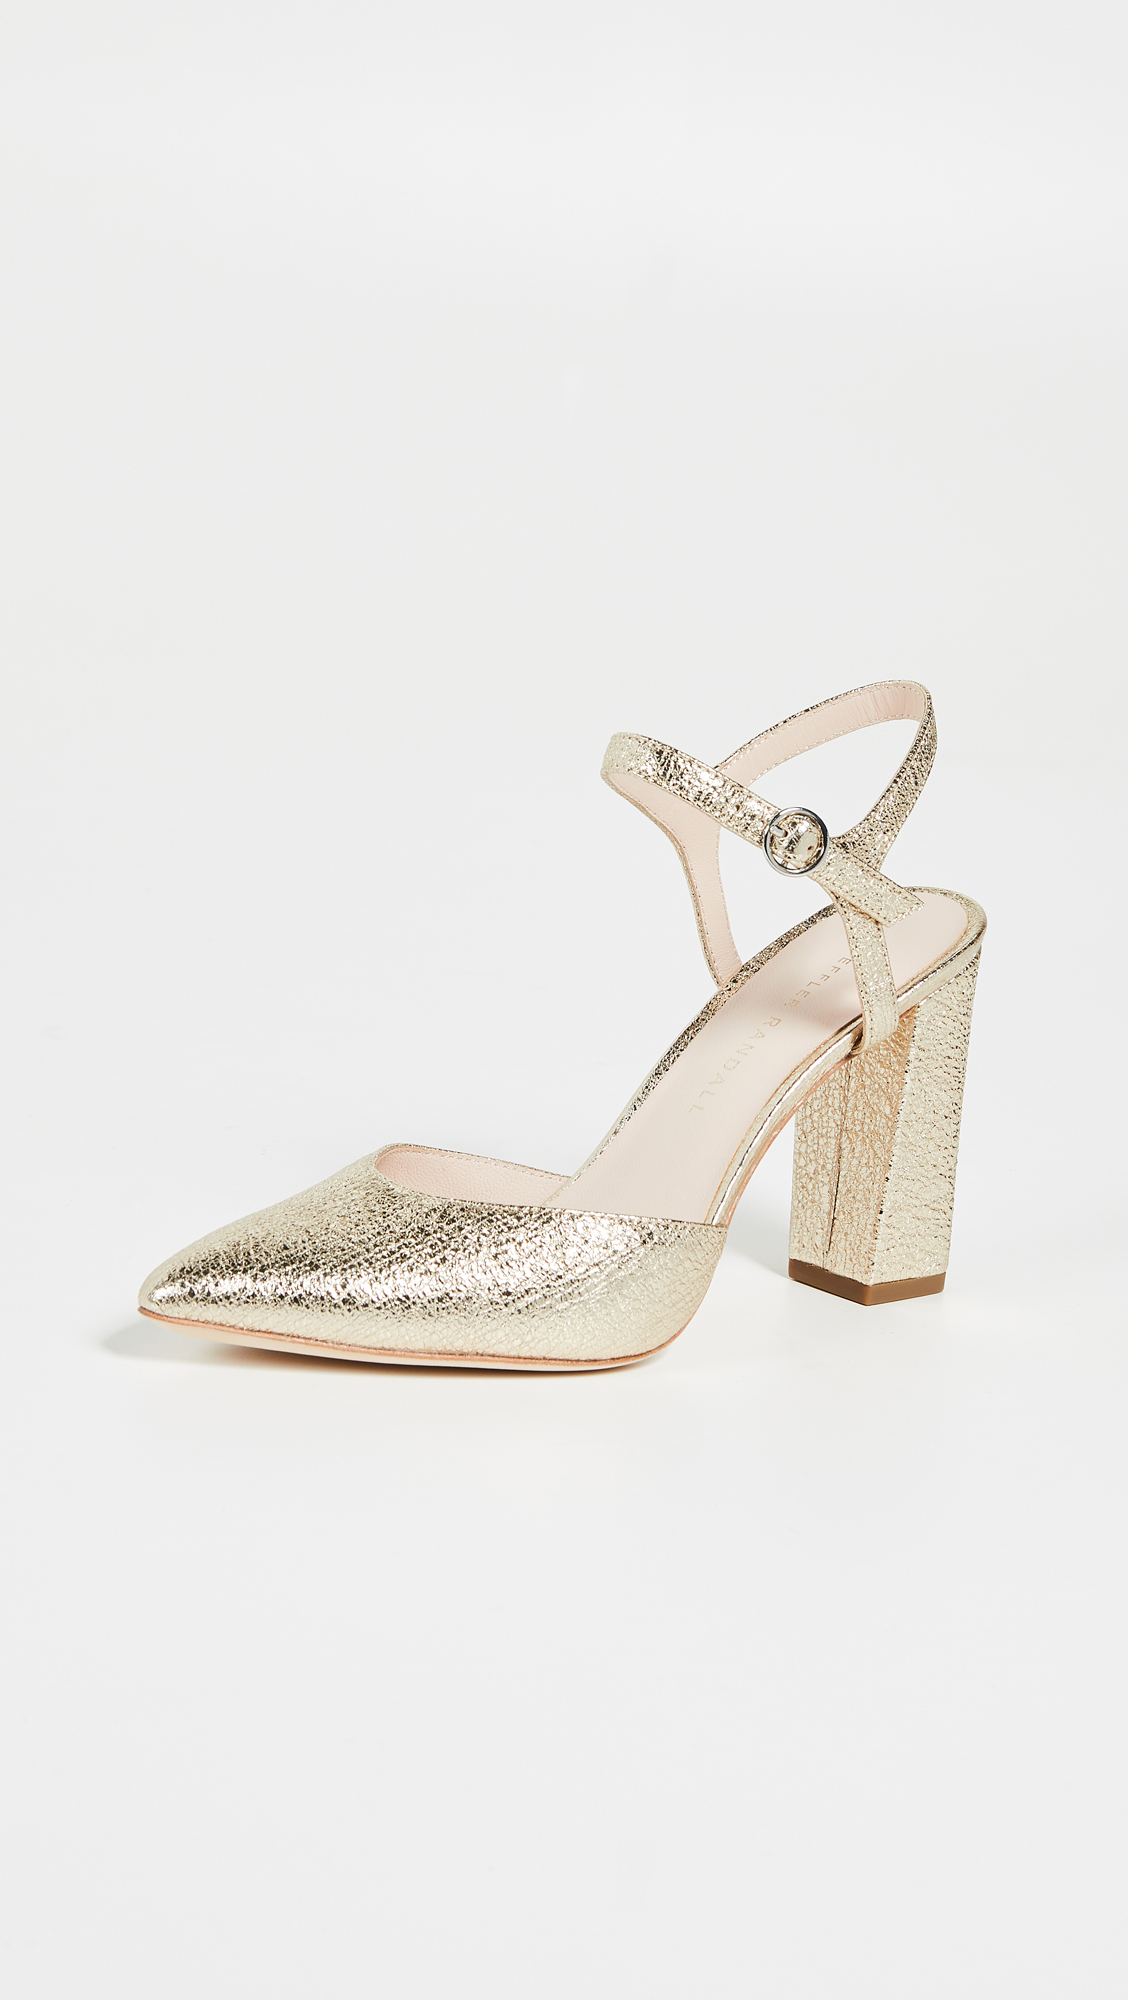 4b8b966ca 7 New Year's Eve Shoes You'll Actually Want to Wear All Night | Real ...